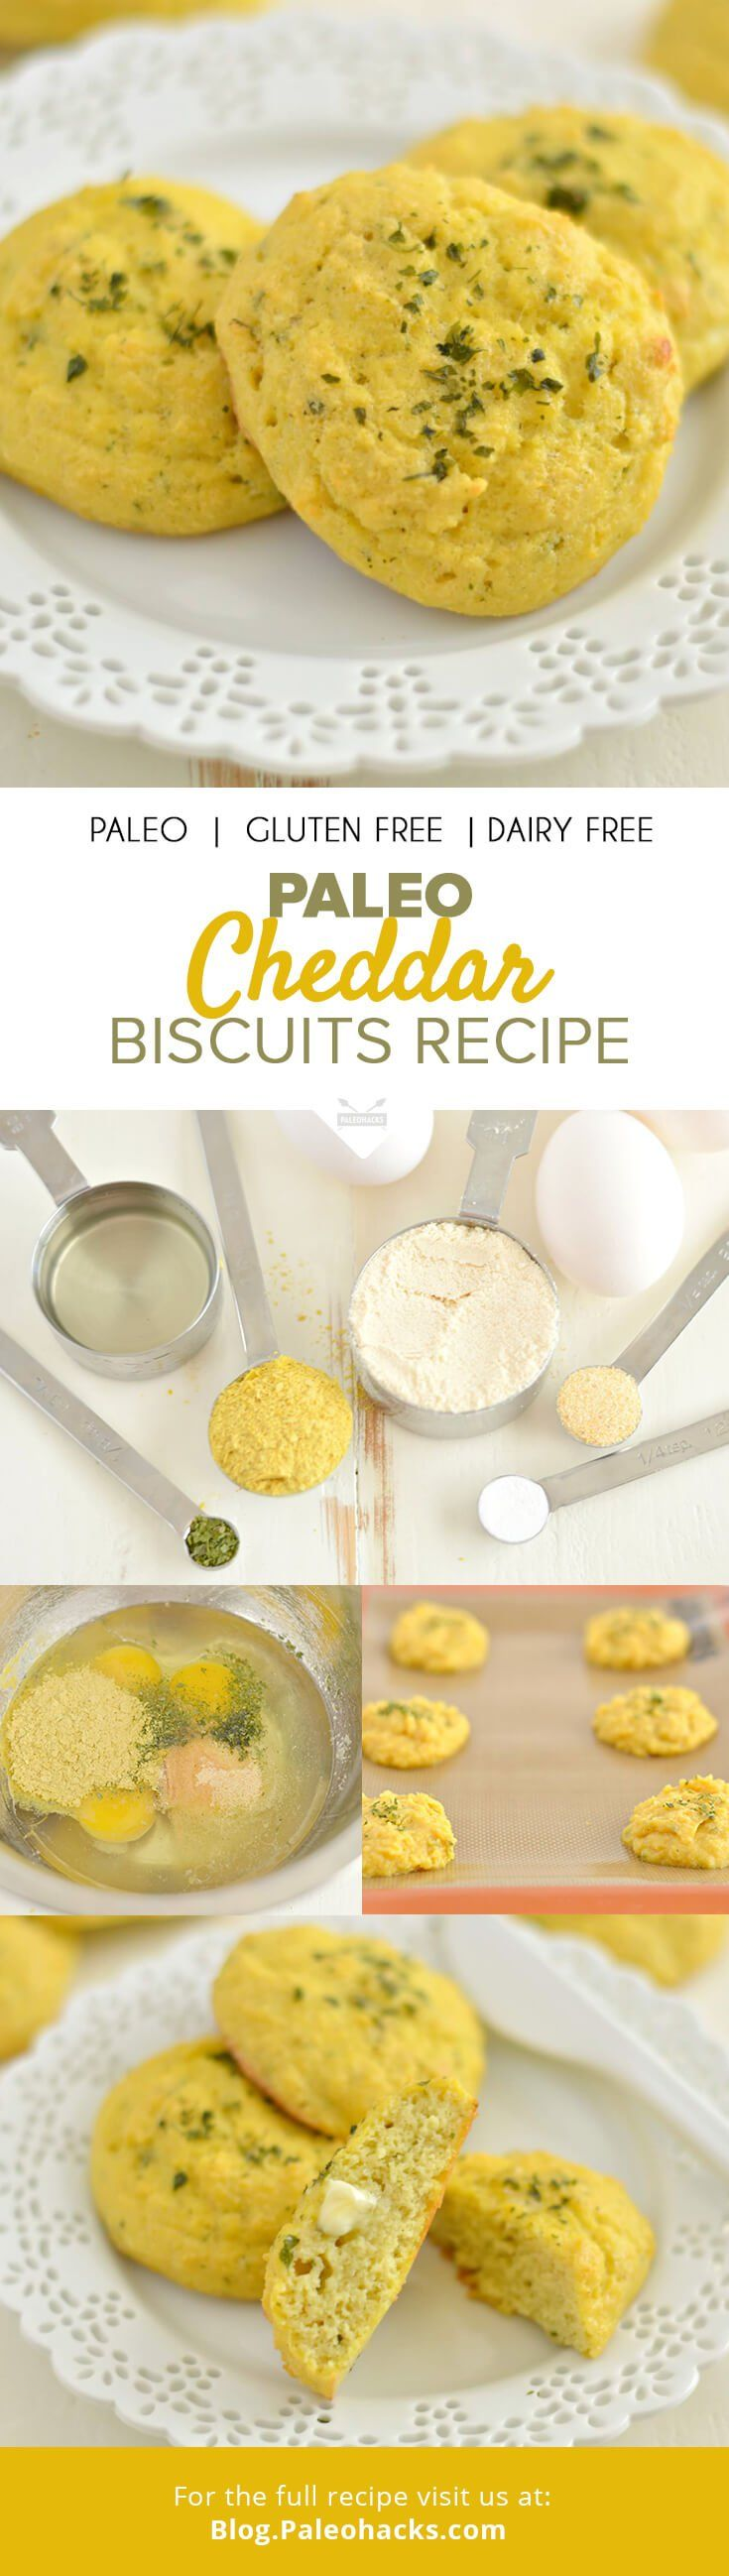 Crispy on the outside and soft on the inside, these Paleo Cheddar Biscuits make a delicious low carb, grain-free snack! For the full recipe visit us here: http://paleo.co/cheddarbiscuit